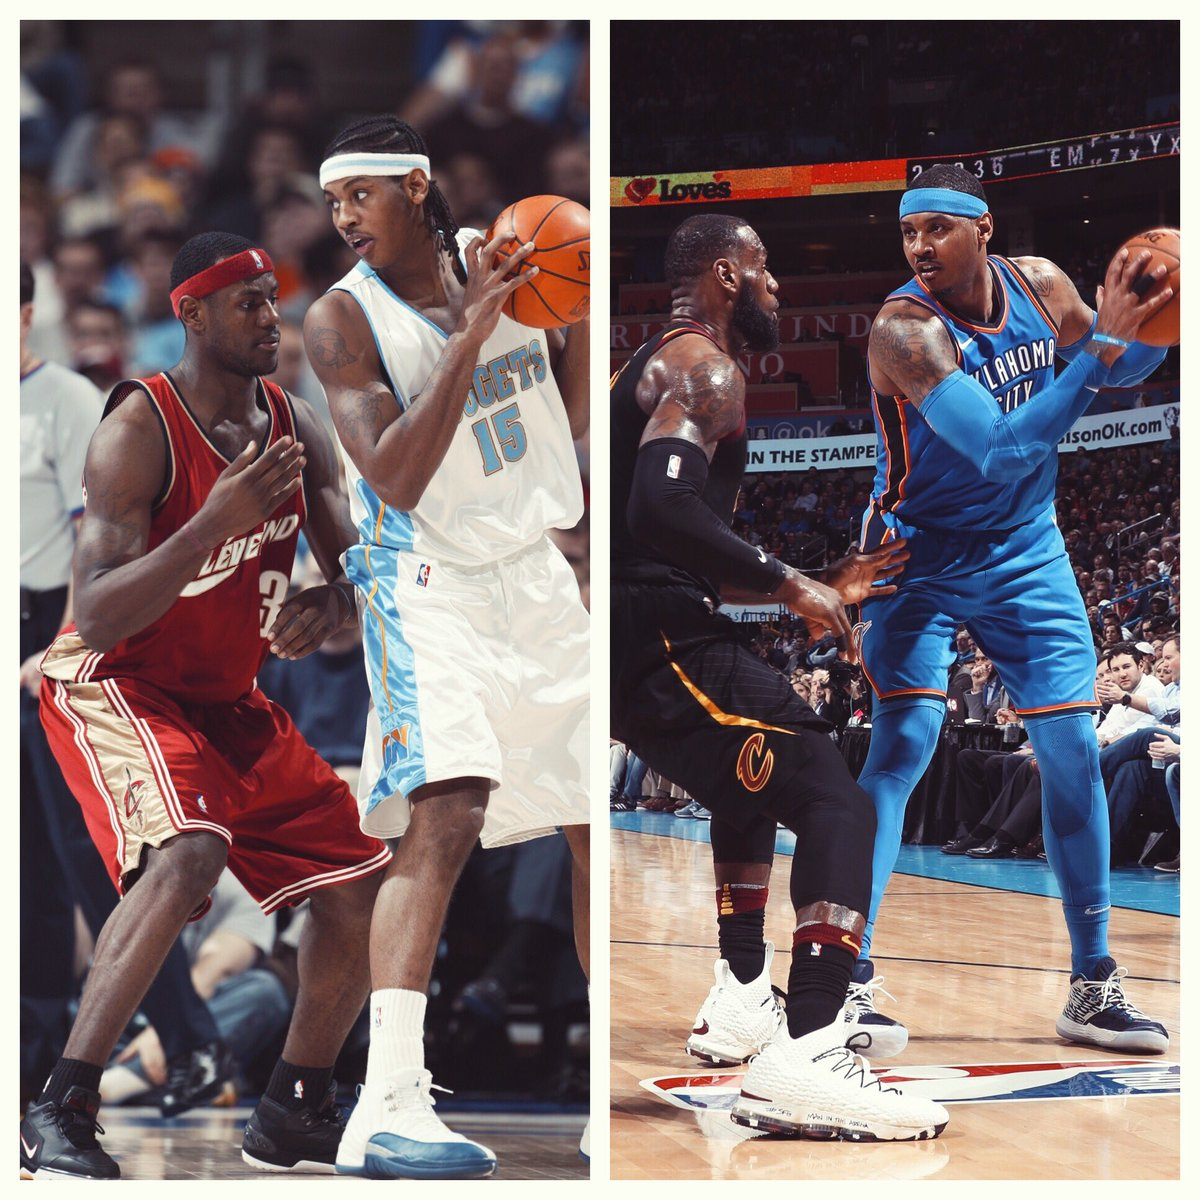 '03 to '18. Bron vs. Melo will never get old.